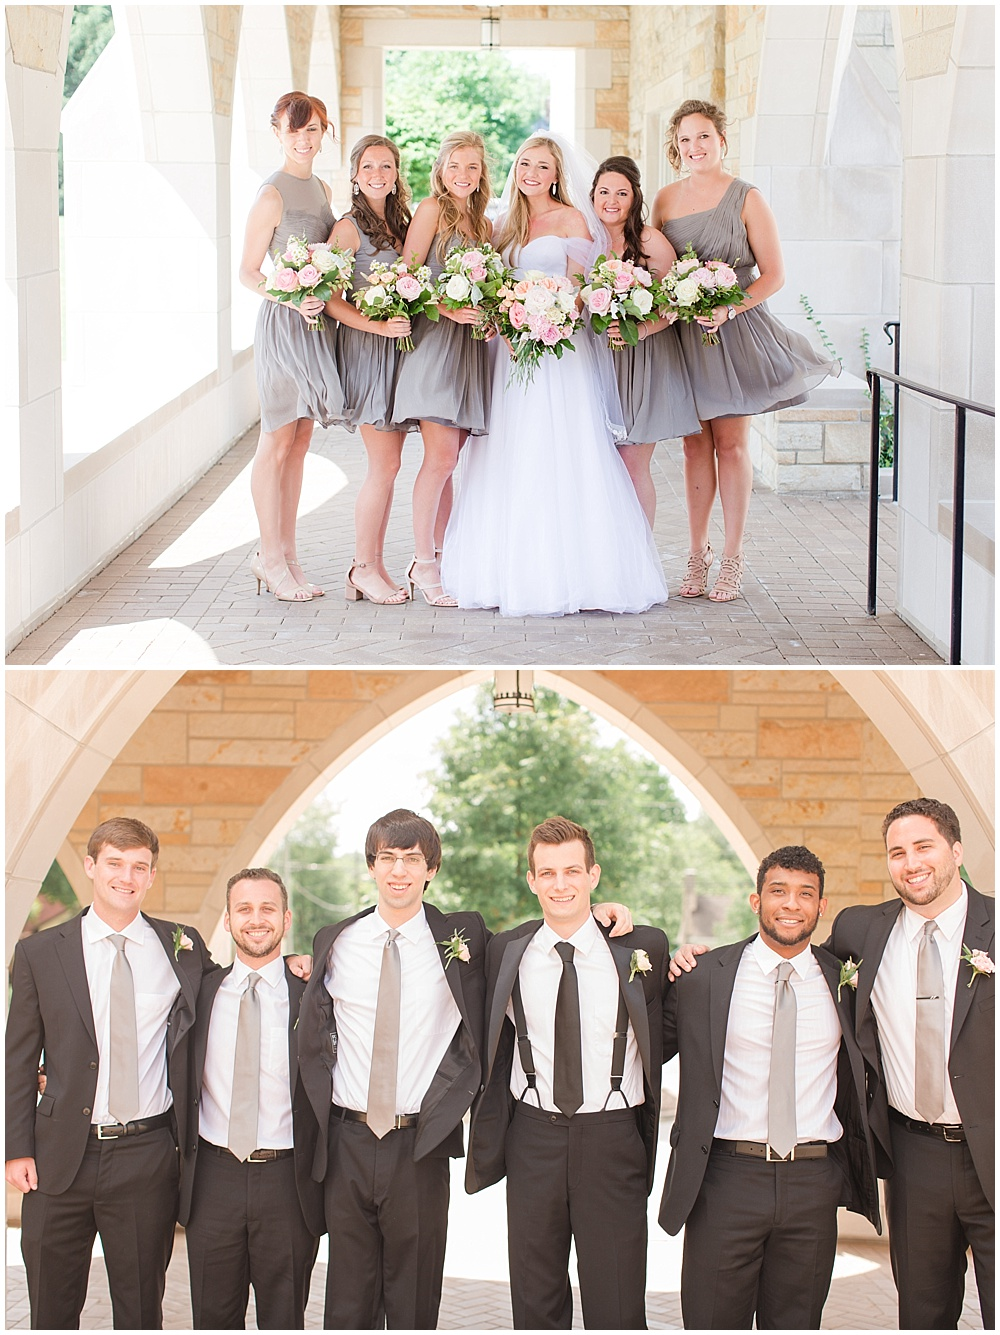 grey bridesmaid dresses; blush and white bridesmaid bouquets; st. paul's episcopal church | Sami Renee Photography | Jessica Dum Wedding Coordination